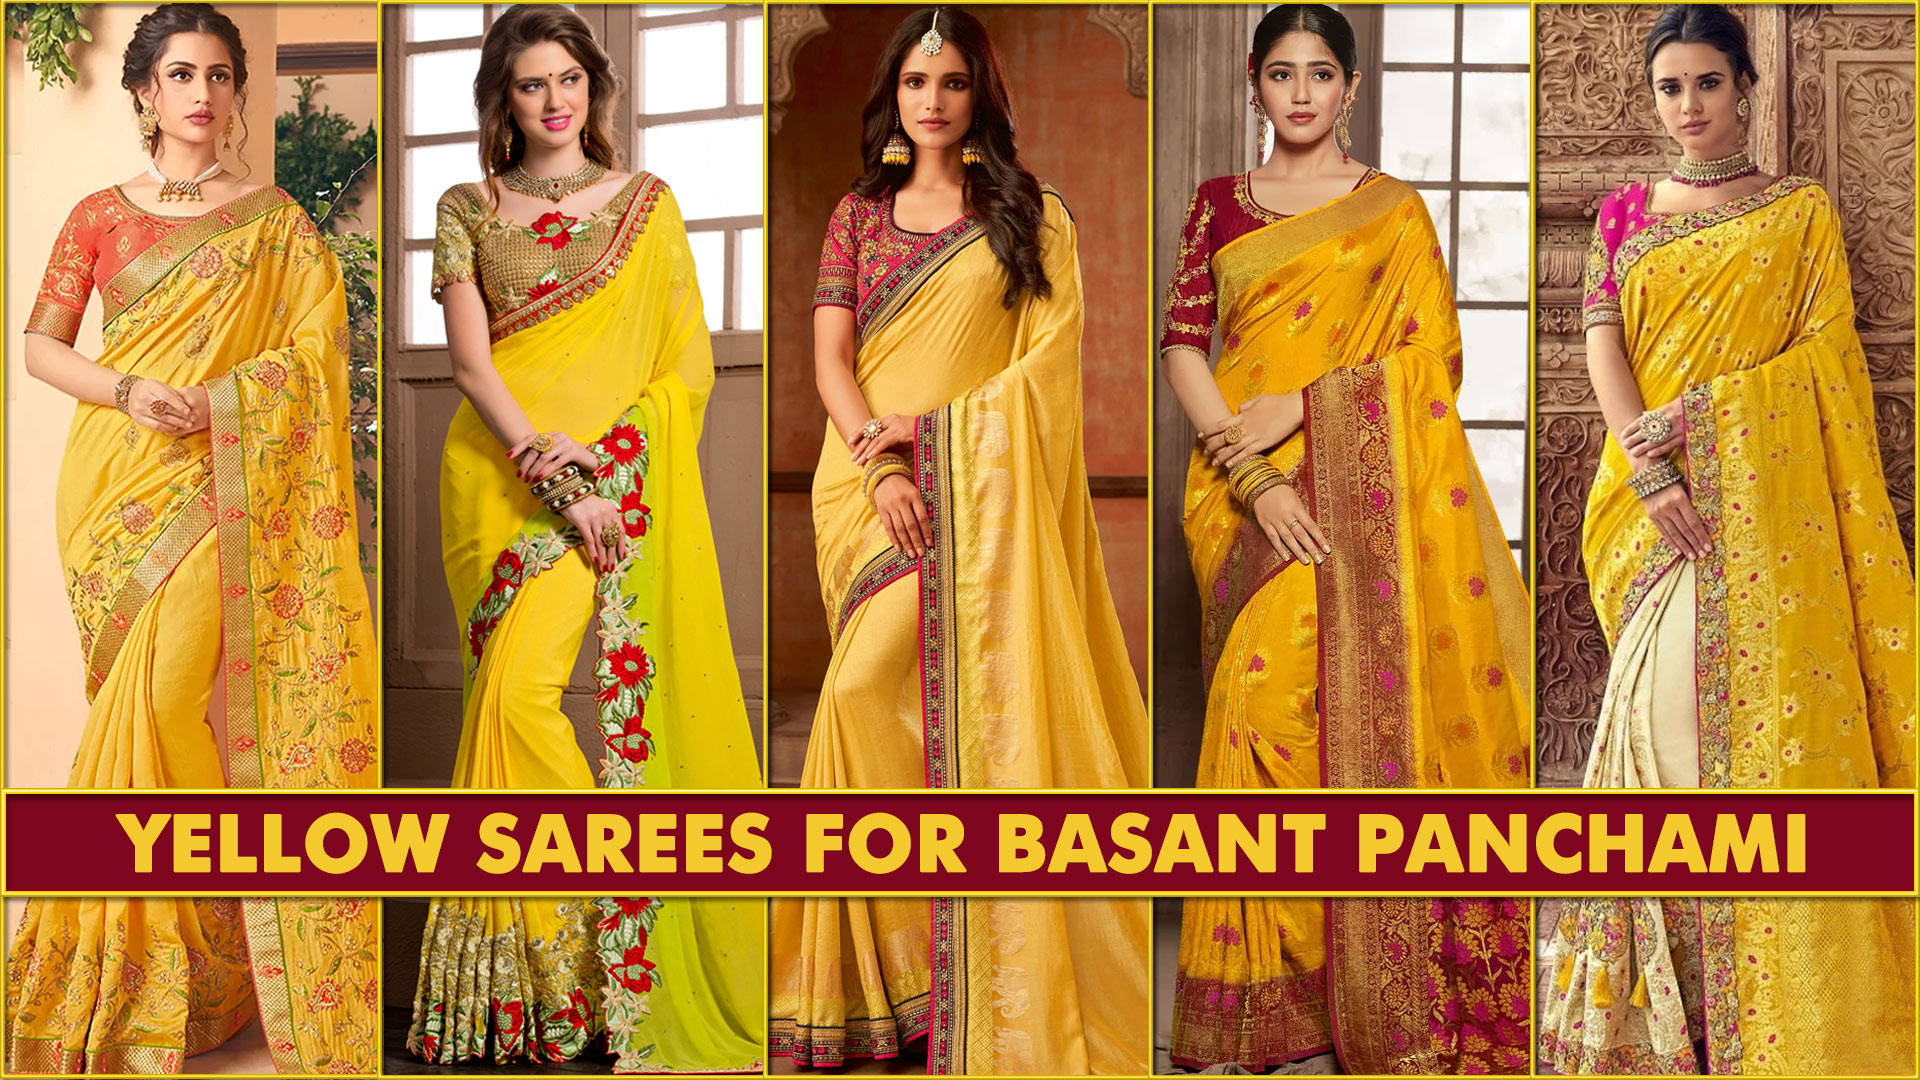 IMPORTANCE OF WEARING YELLOW SAREE ON SARASWATI PUJA